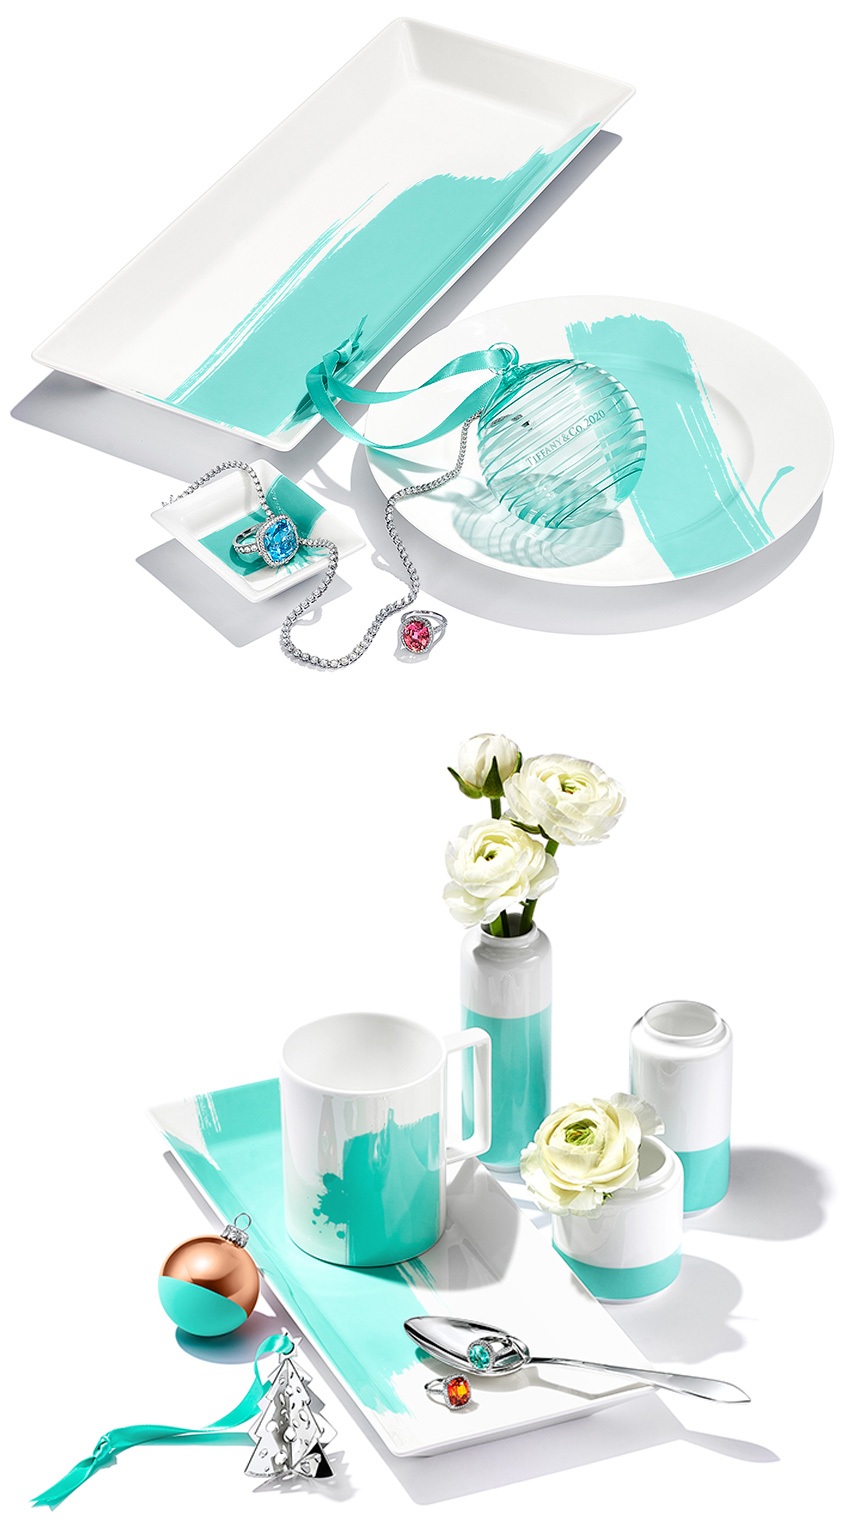 Tiffany Home accessories Holiday Gift guide in Perfect Wedding Magazine